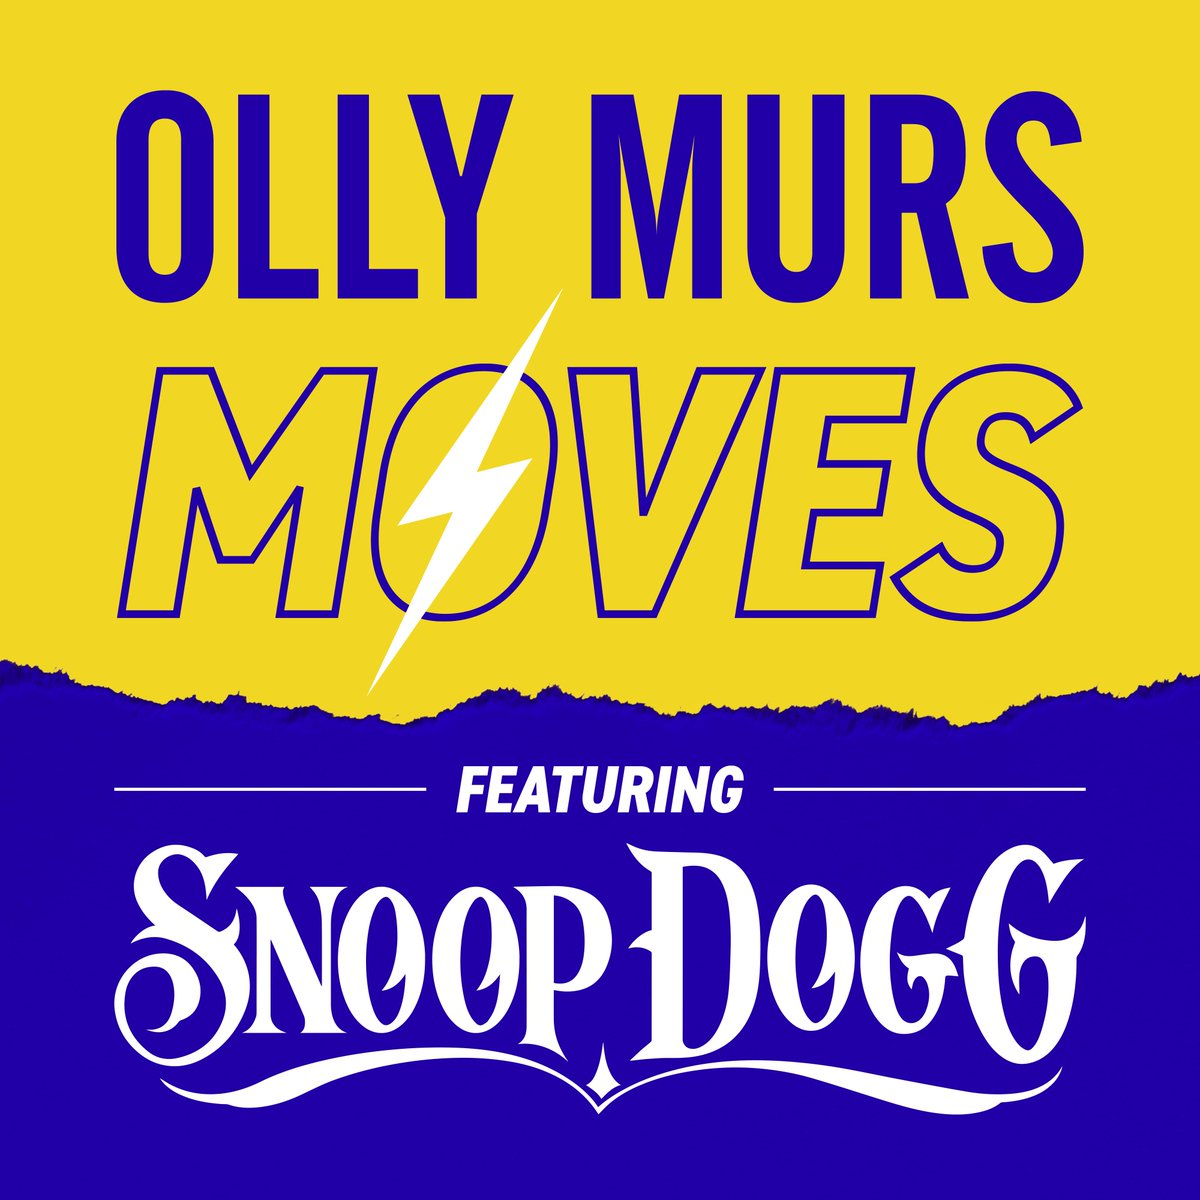 just released a new track #MOVES wit my guy @ollymurs ????????  https://t.co/Vl1QXbNmuA https://t.co/QMNvUn7xbV